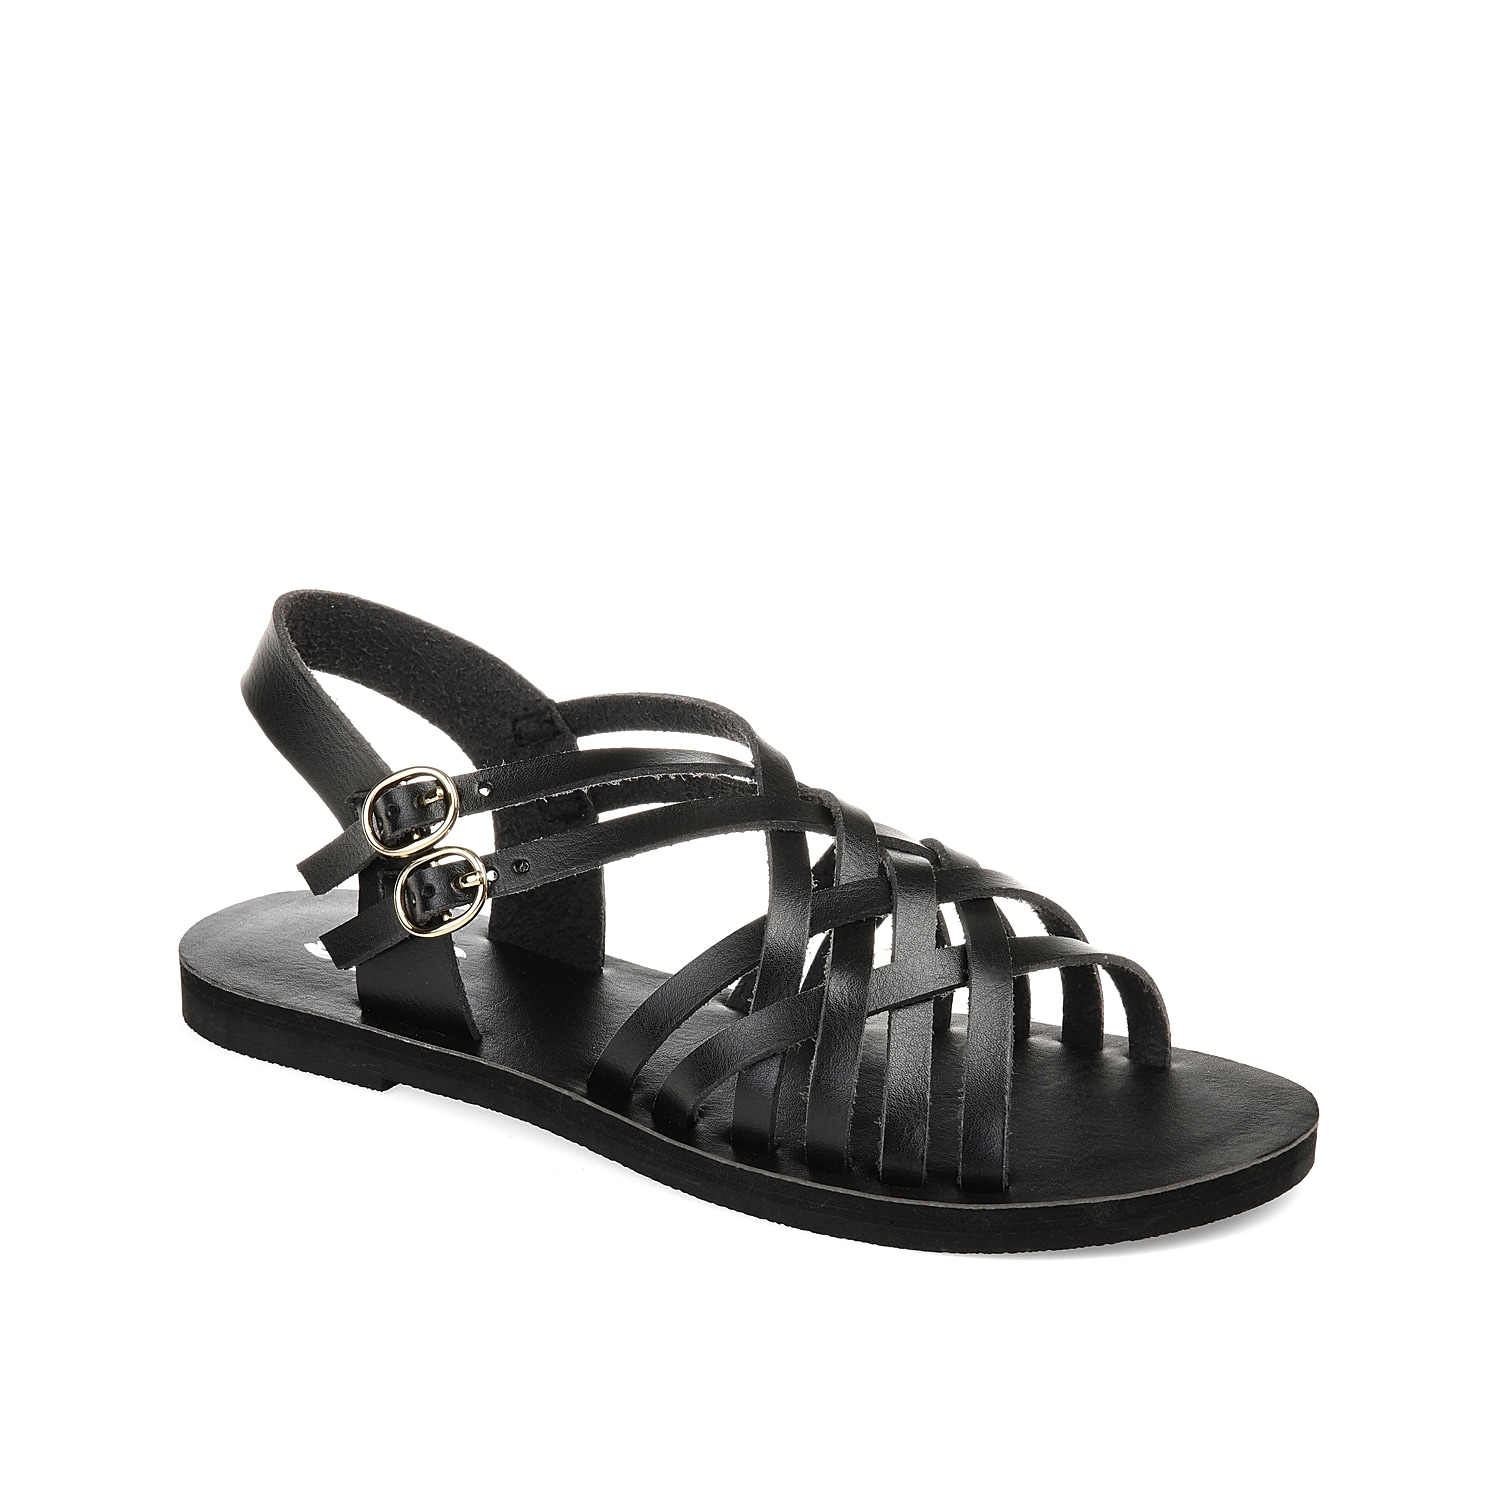 A strappy woven construction makes the Colby sandal from Journee Collection the perfect way to add boho style to your look. Pair this sleek sandal with your favorite dresses and skirts to stay on trend all summer long.